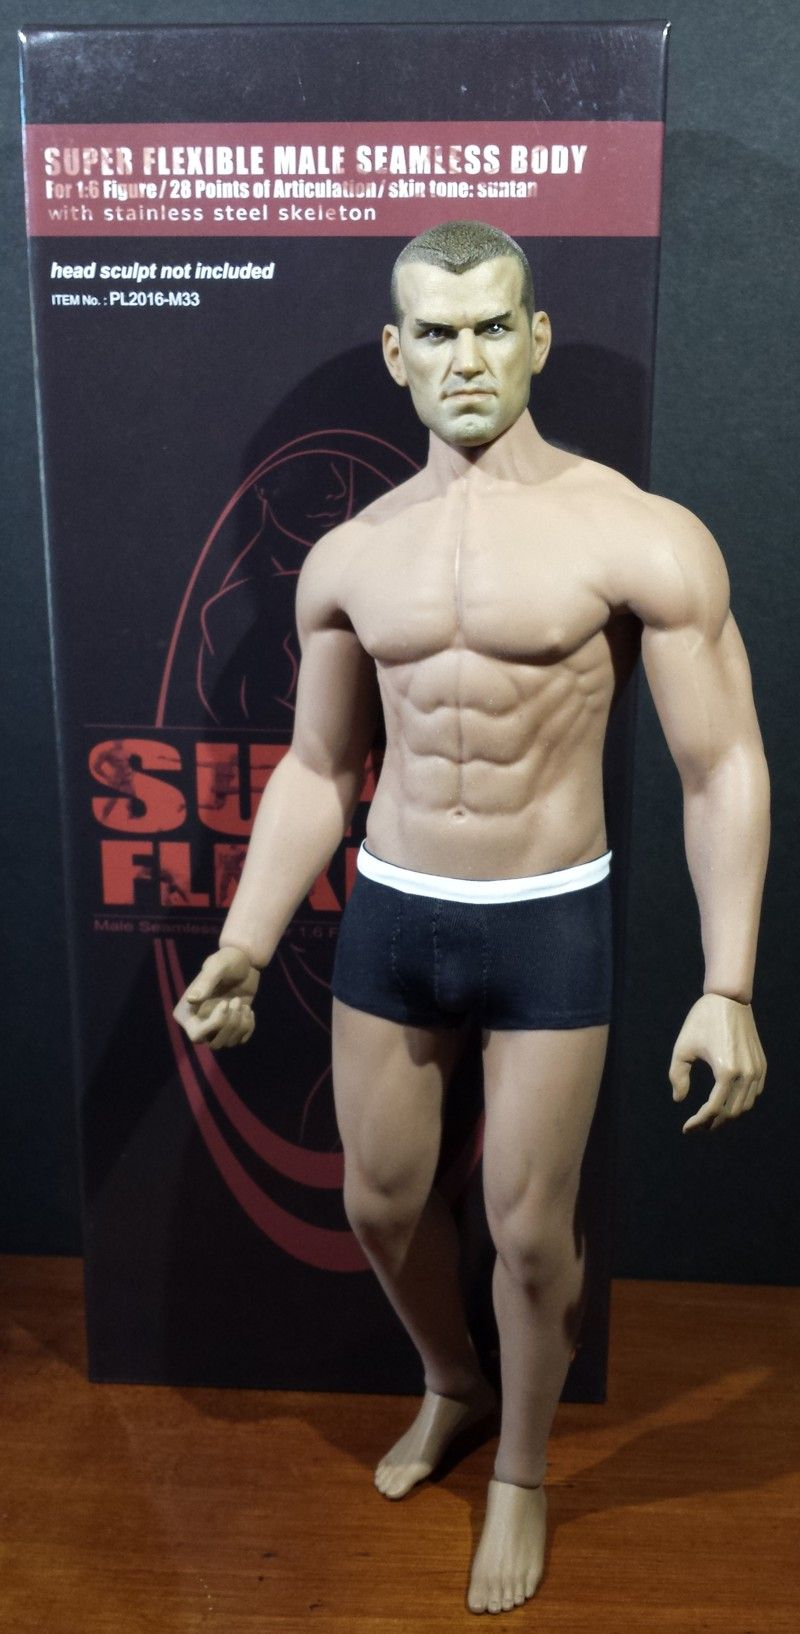 Phicen Super Flexible Male Seamless Body with stainless steel skeleton M31